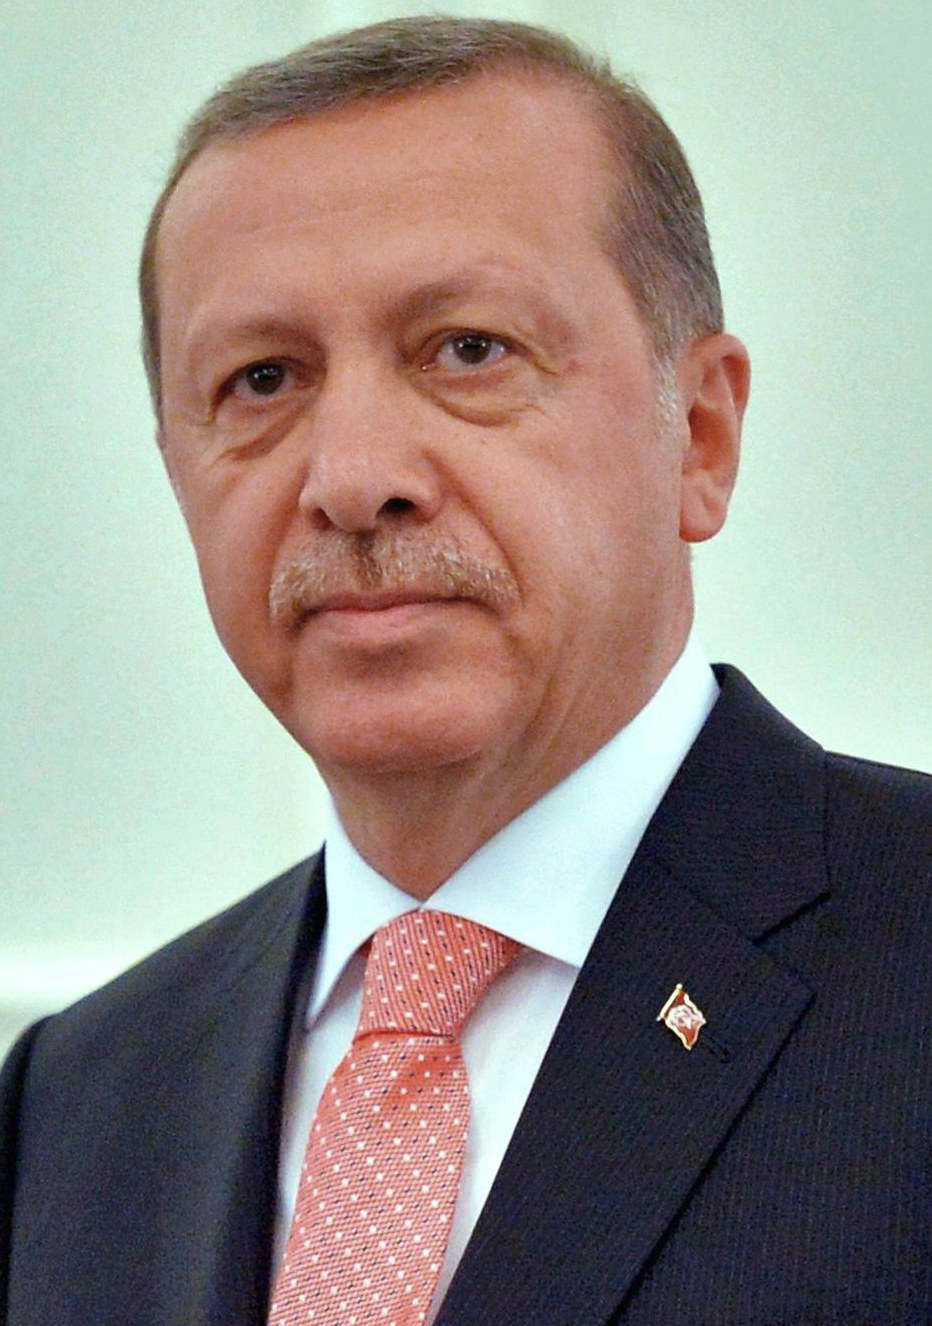 Turkish President Recep Tayyip Erdogan. Credit: Wikimedia Commons.